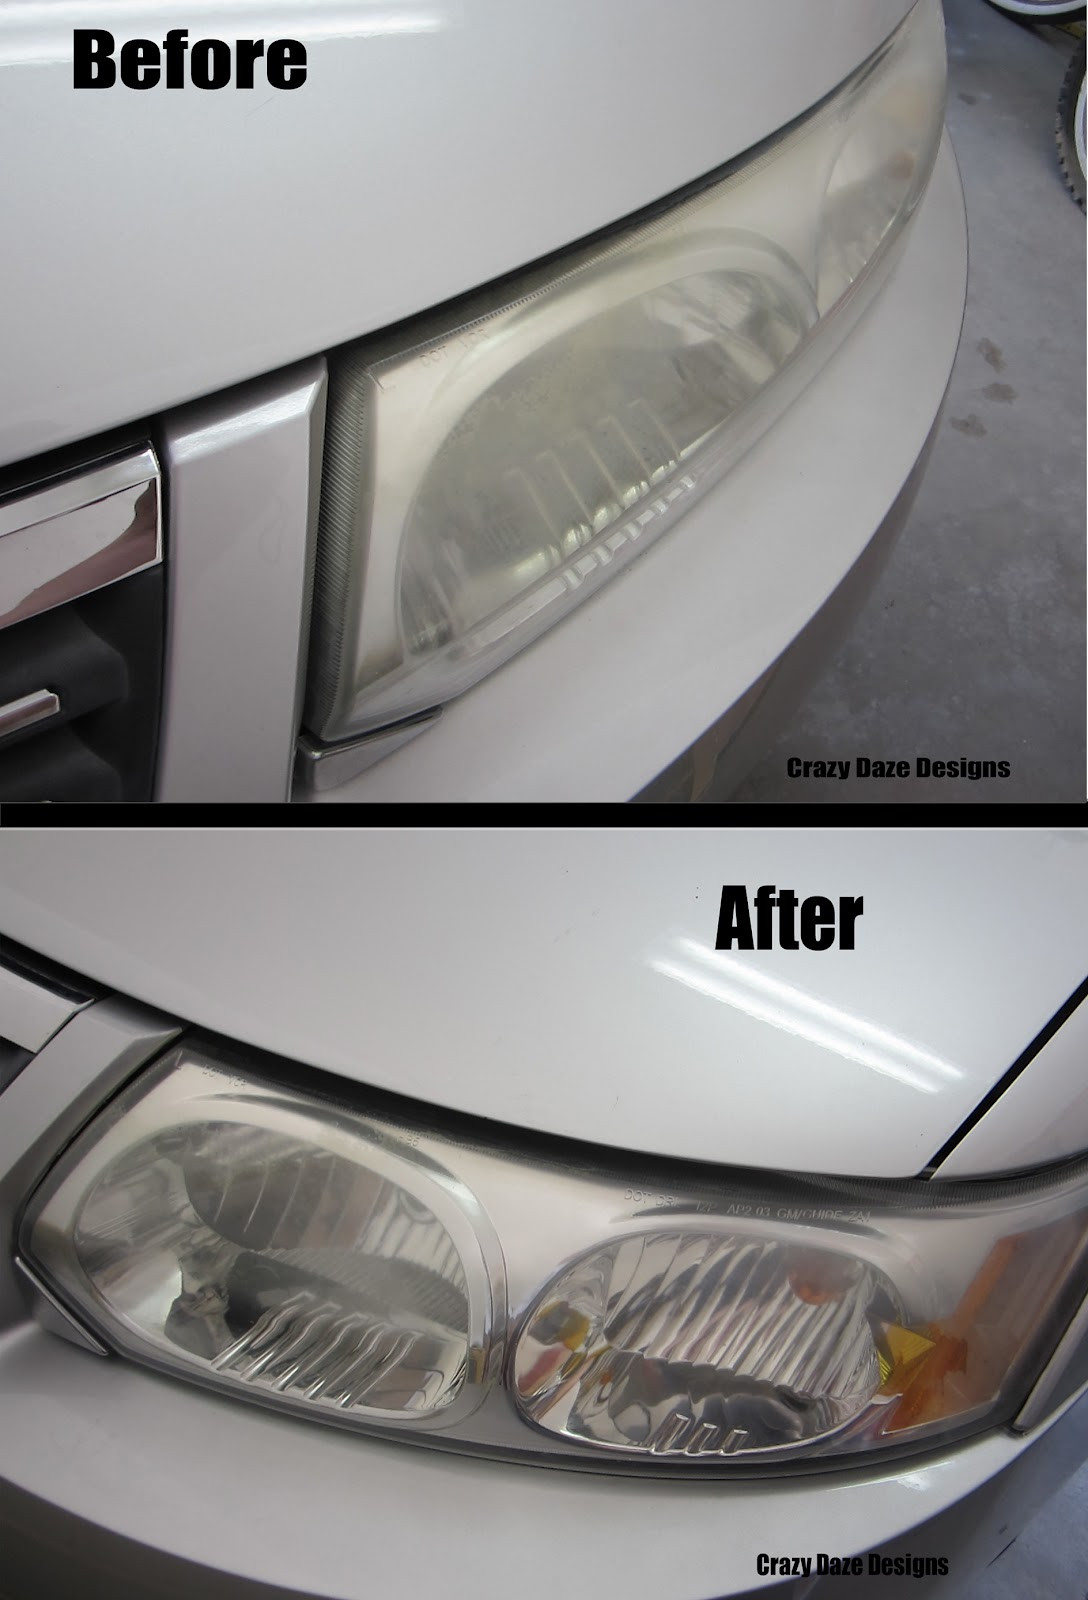 Best ideas about DIY Headlight Cleaner . Save or Pin Crazy Daze Designs Bud DIY Cleaning Foggy Headlights Now.